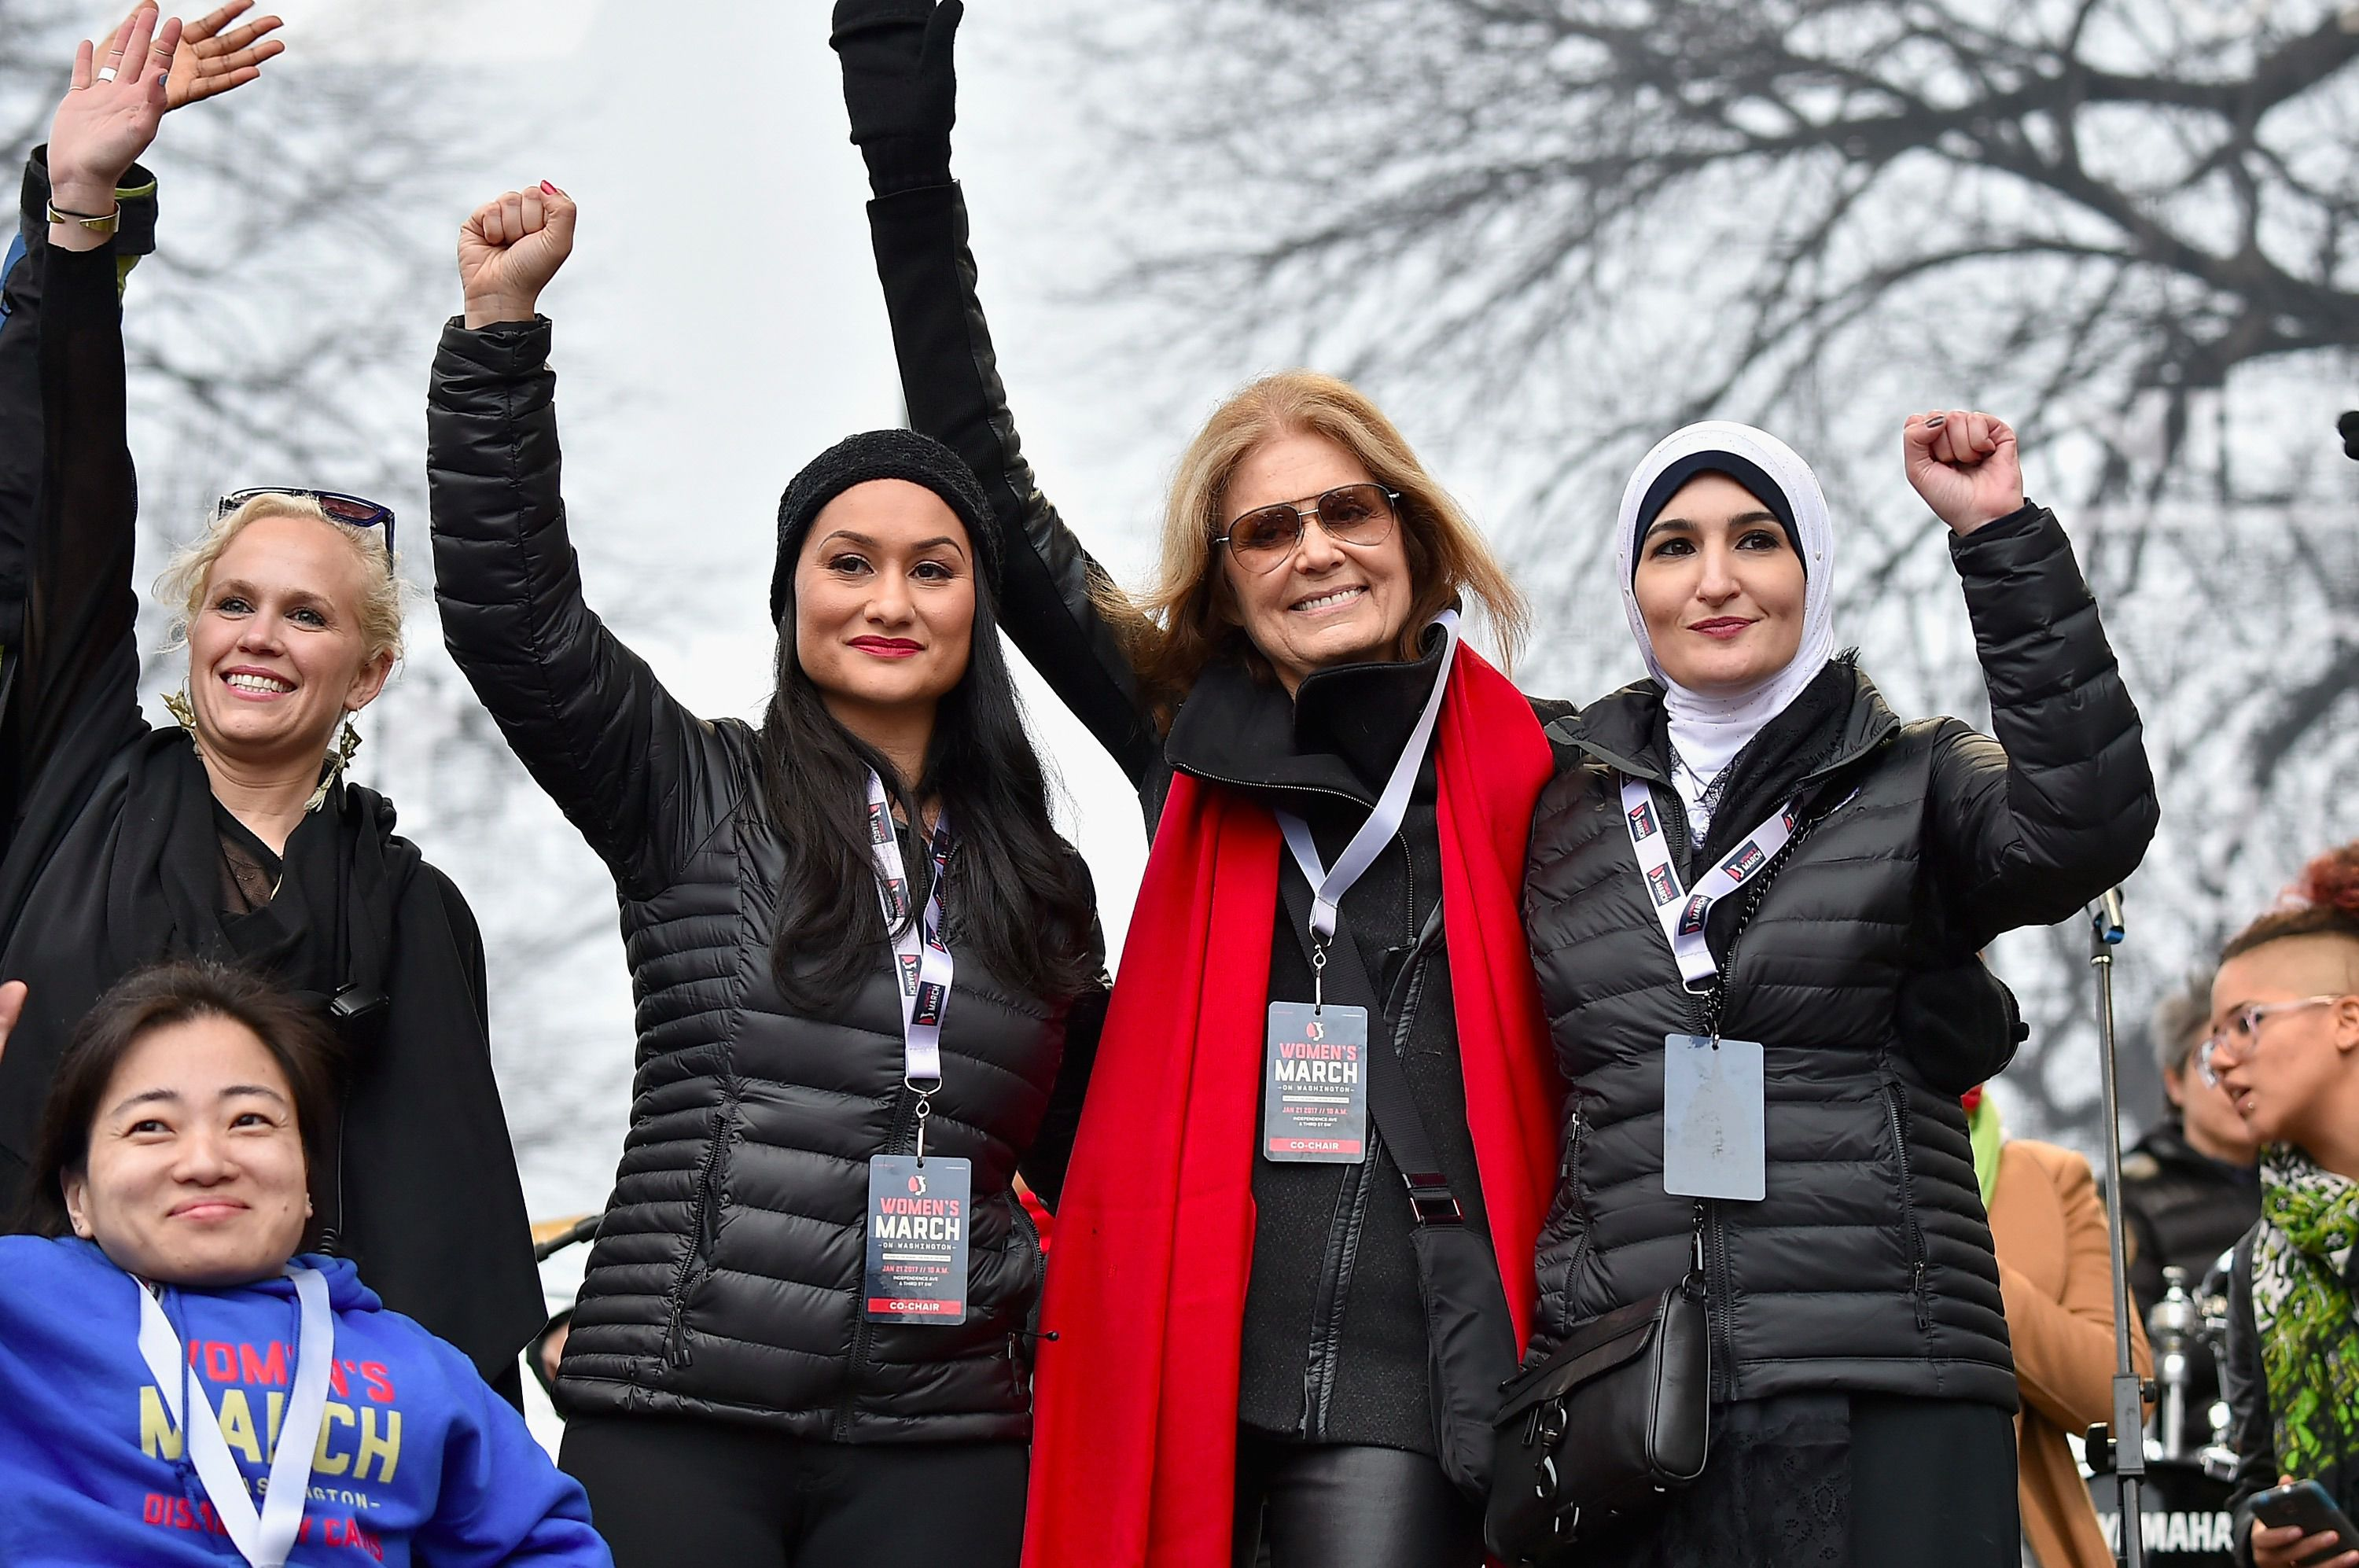 Linda Sarsour, right, standing beside Gloria Steinem at the Women's March.